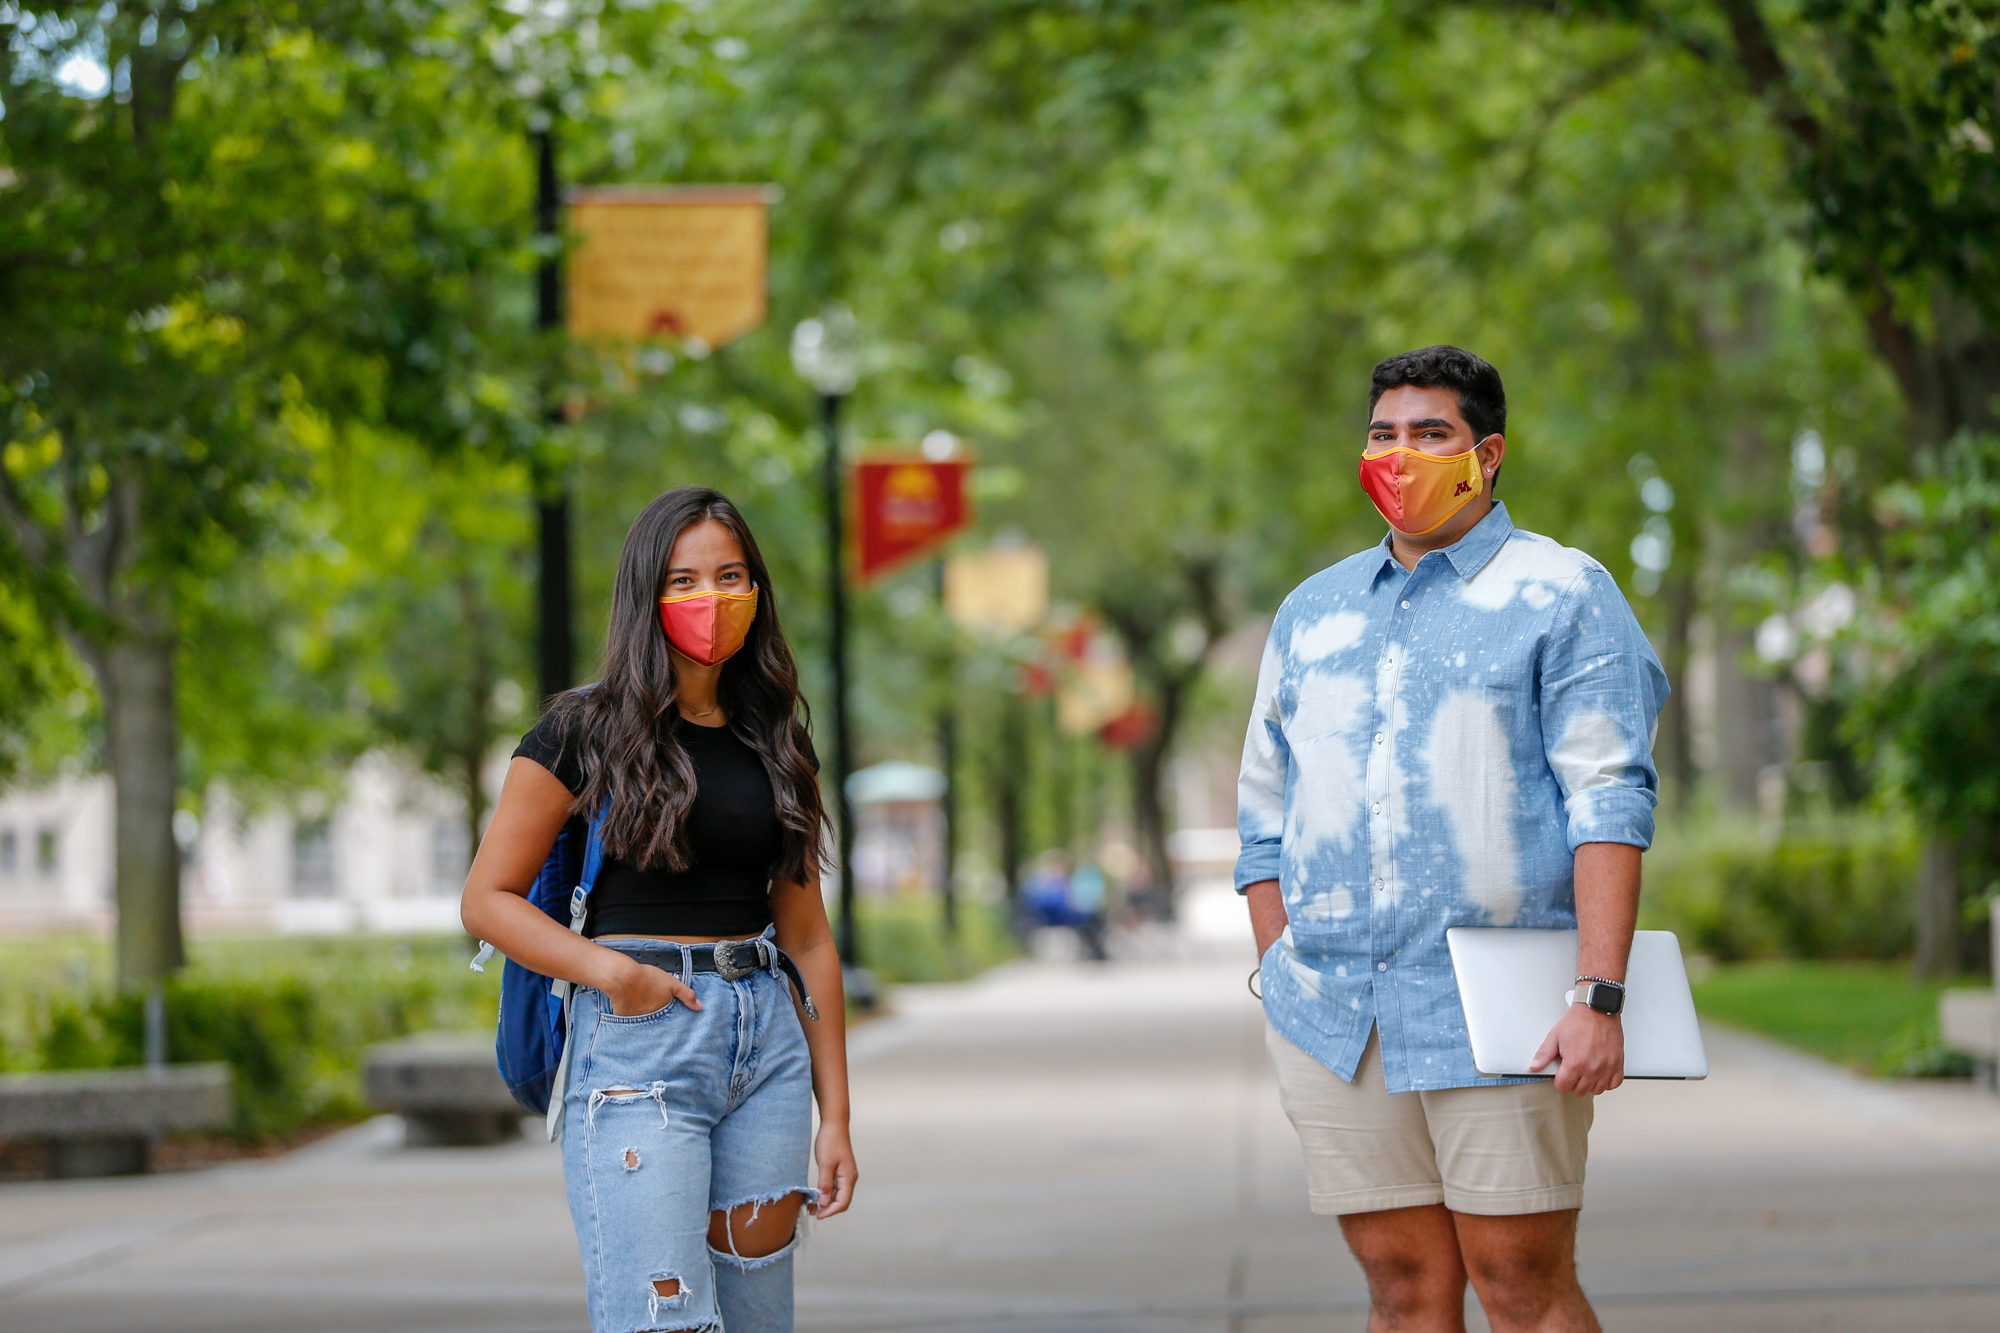 Two students walking on campus together wearing masks